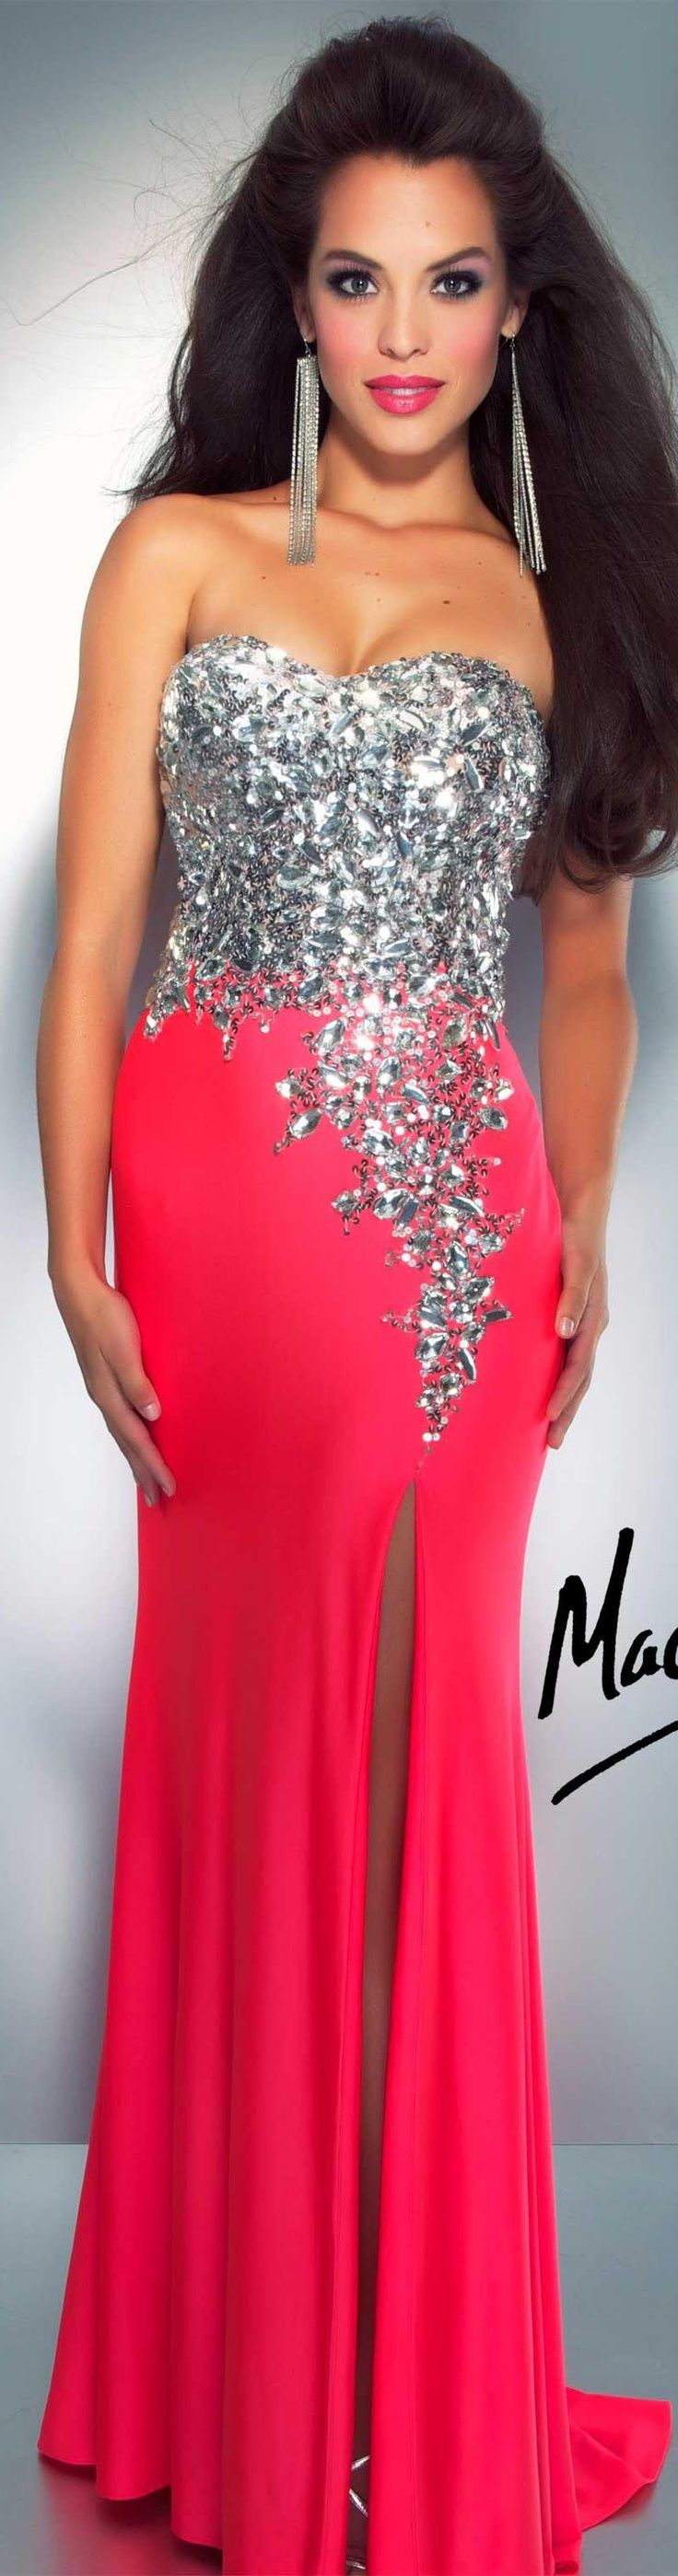 10 best images about Neon Homecoming Dresses on Pinterest | 75 ...